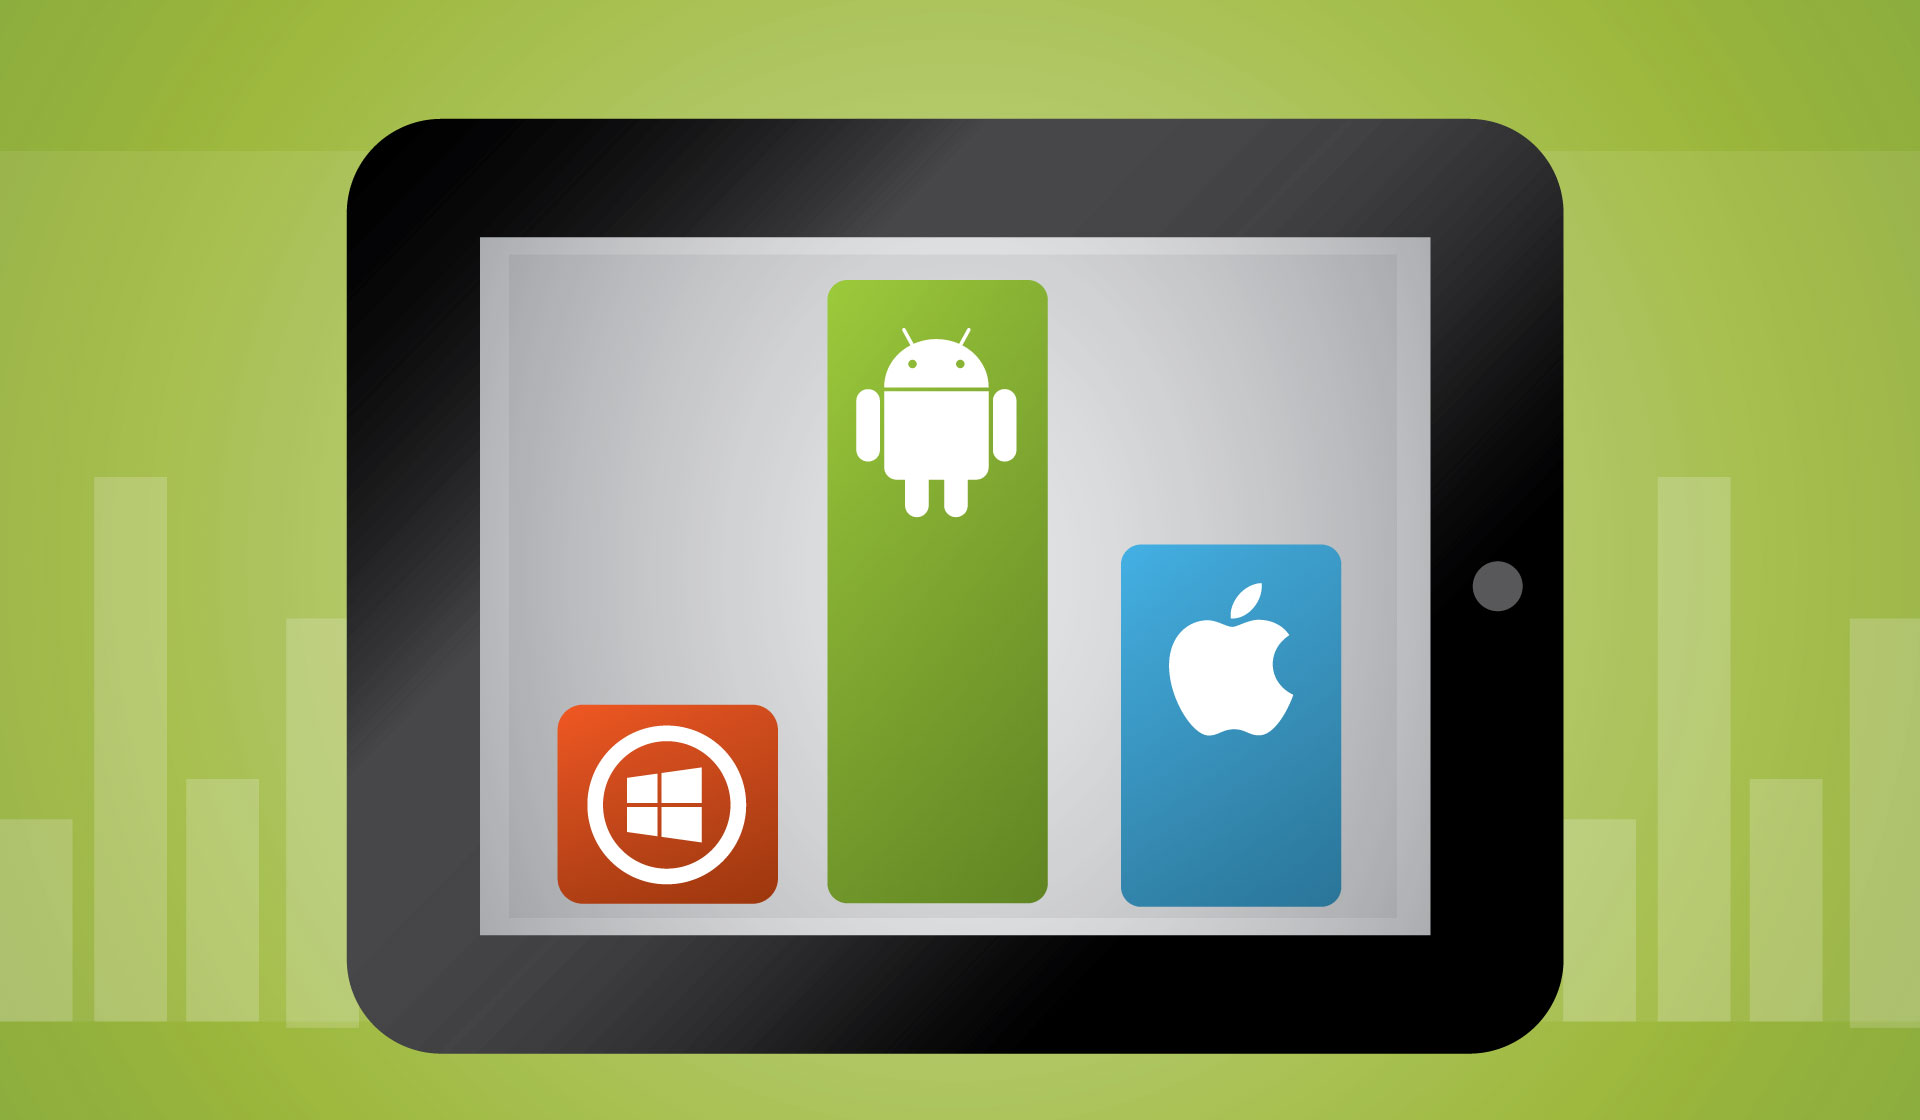 Illusatration ANDROID, IOS, MICROSOFT lequel domine ?